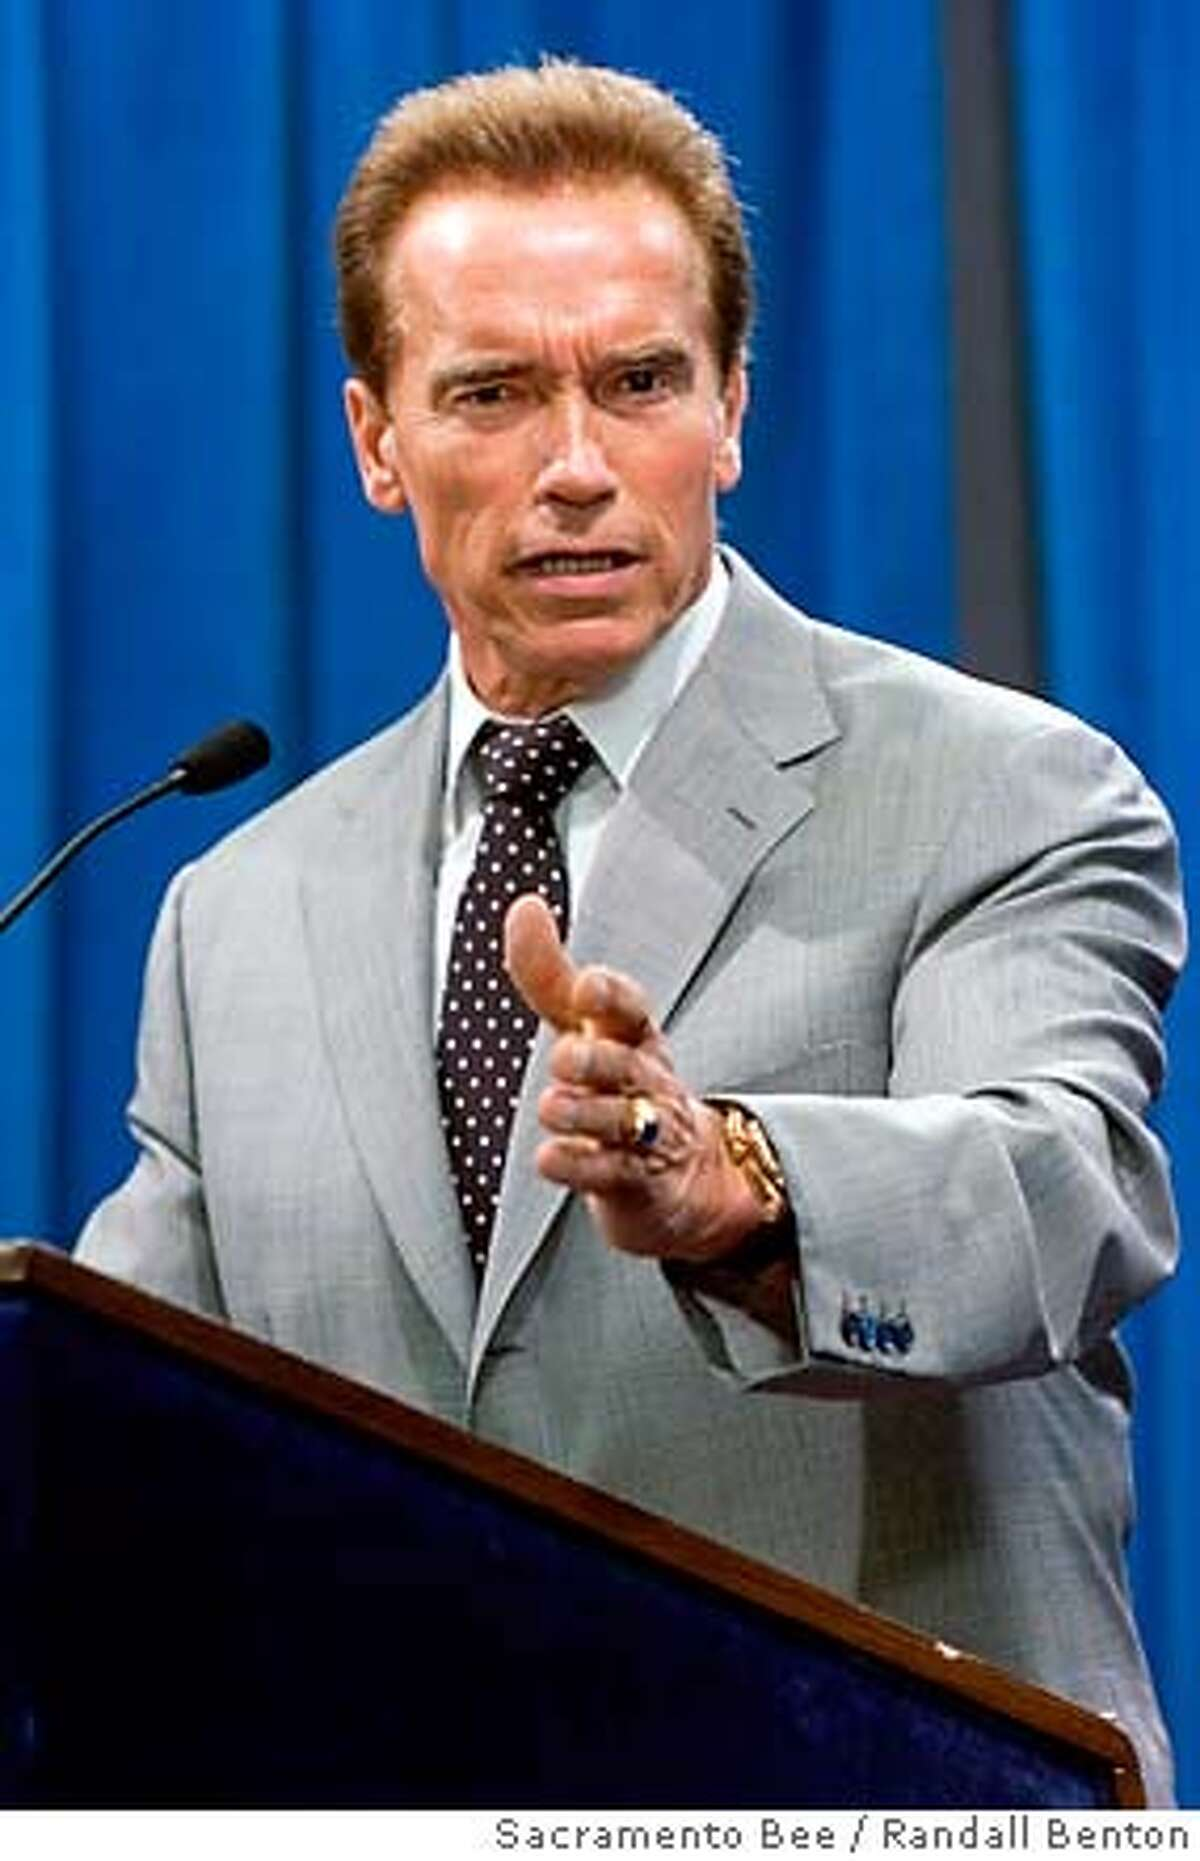 California Gov. Arnold Schwarzenegger speaks about the budget during a news conference at the California State Capitol in Sacramento, Calif. on Thursday, July 26, 2007. A four-week budget stalemate seemed likely to continue Thursday amid partisan wrangling over attempts to balance the $145 billion spending plan. (AP Photo/Sacramento Bee, Randall Benton) **MAGS OUT, TV OUT, INTERNET OUT, NO SALES **